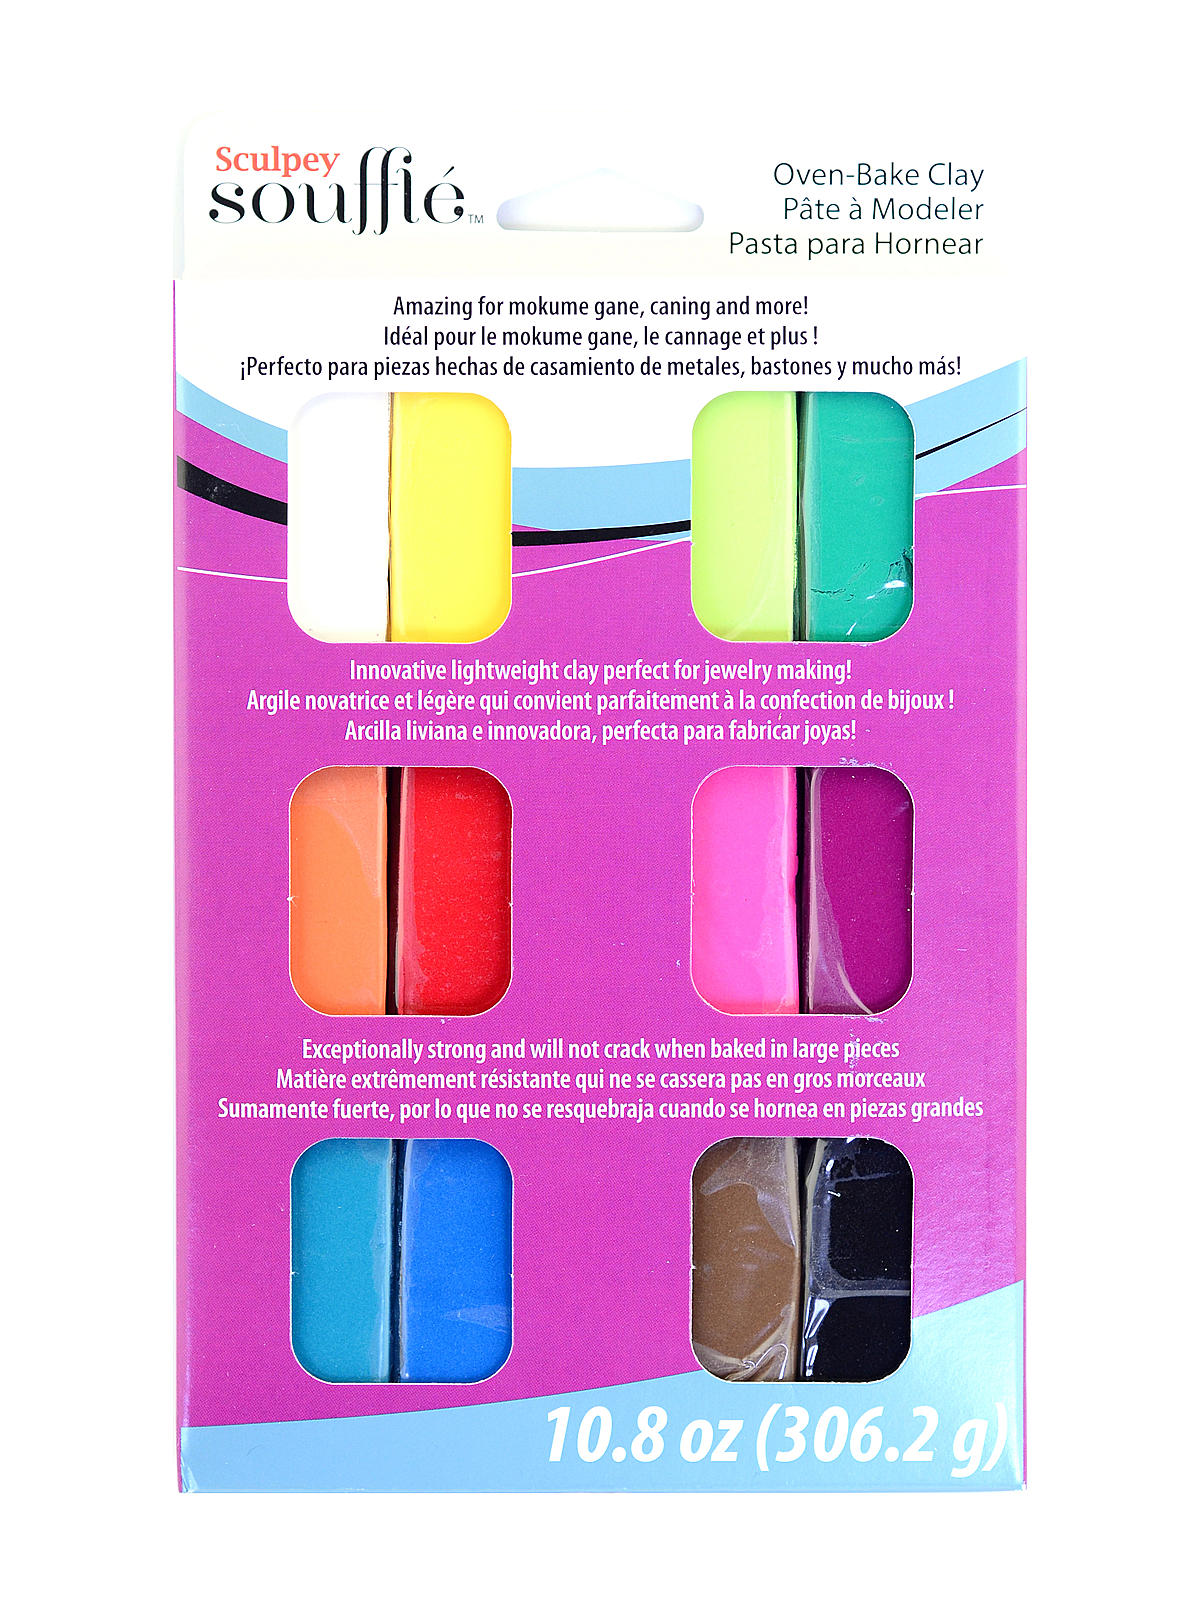 Soufflé Oven-Bake Clay Multipack